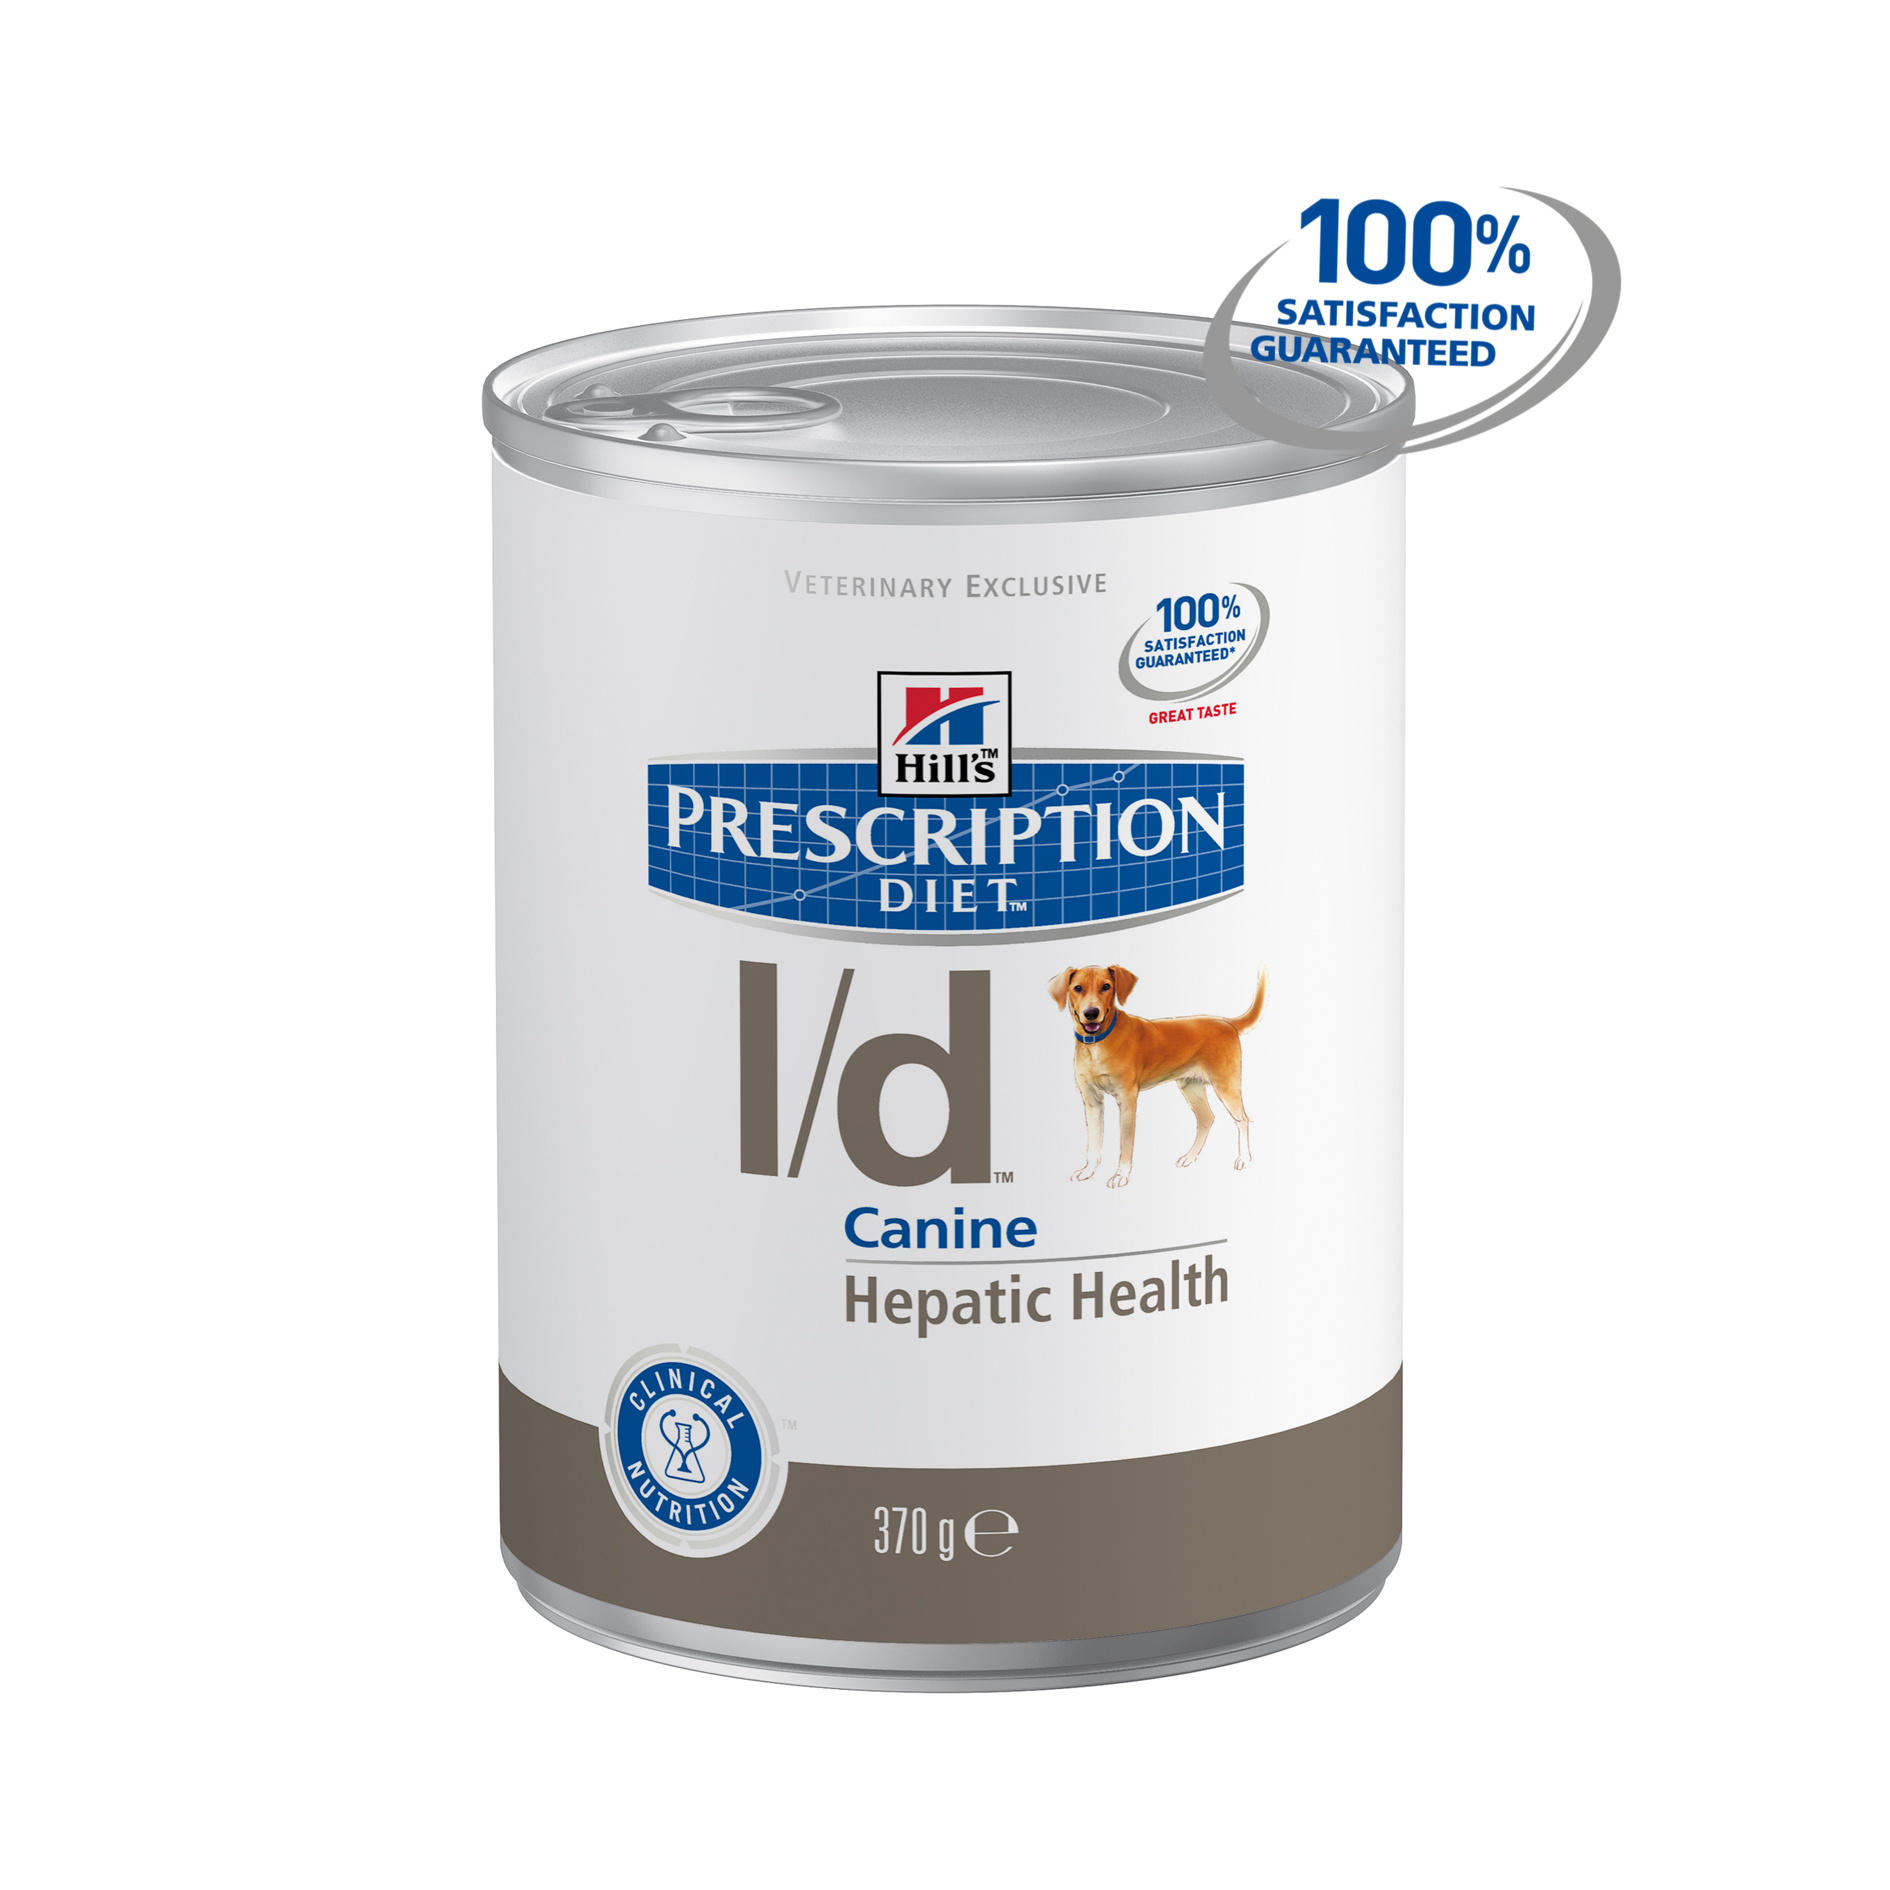 8011M PD Prescription Diet Canine 0.370кг l/d